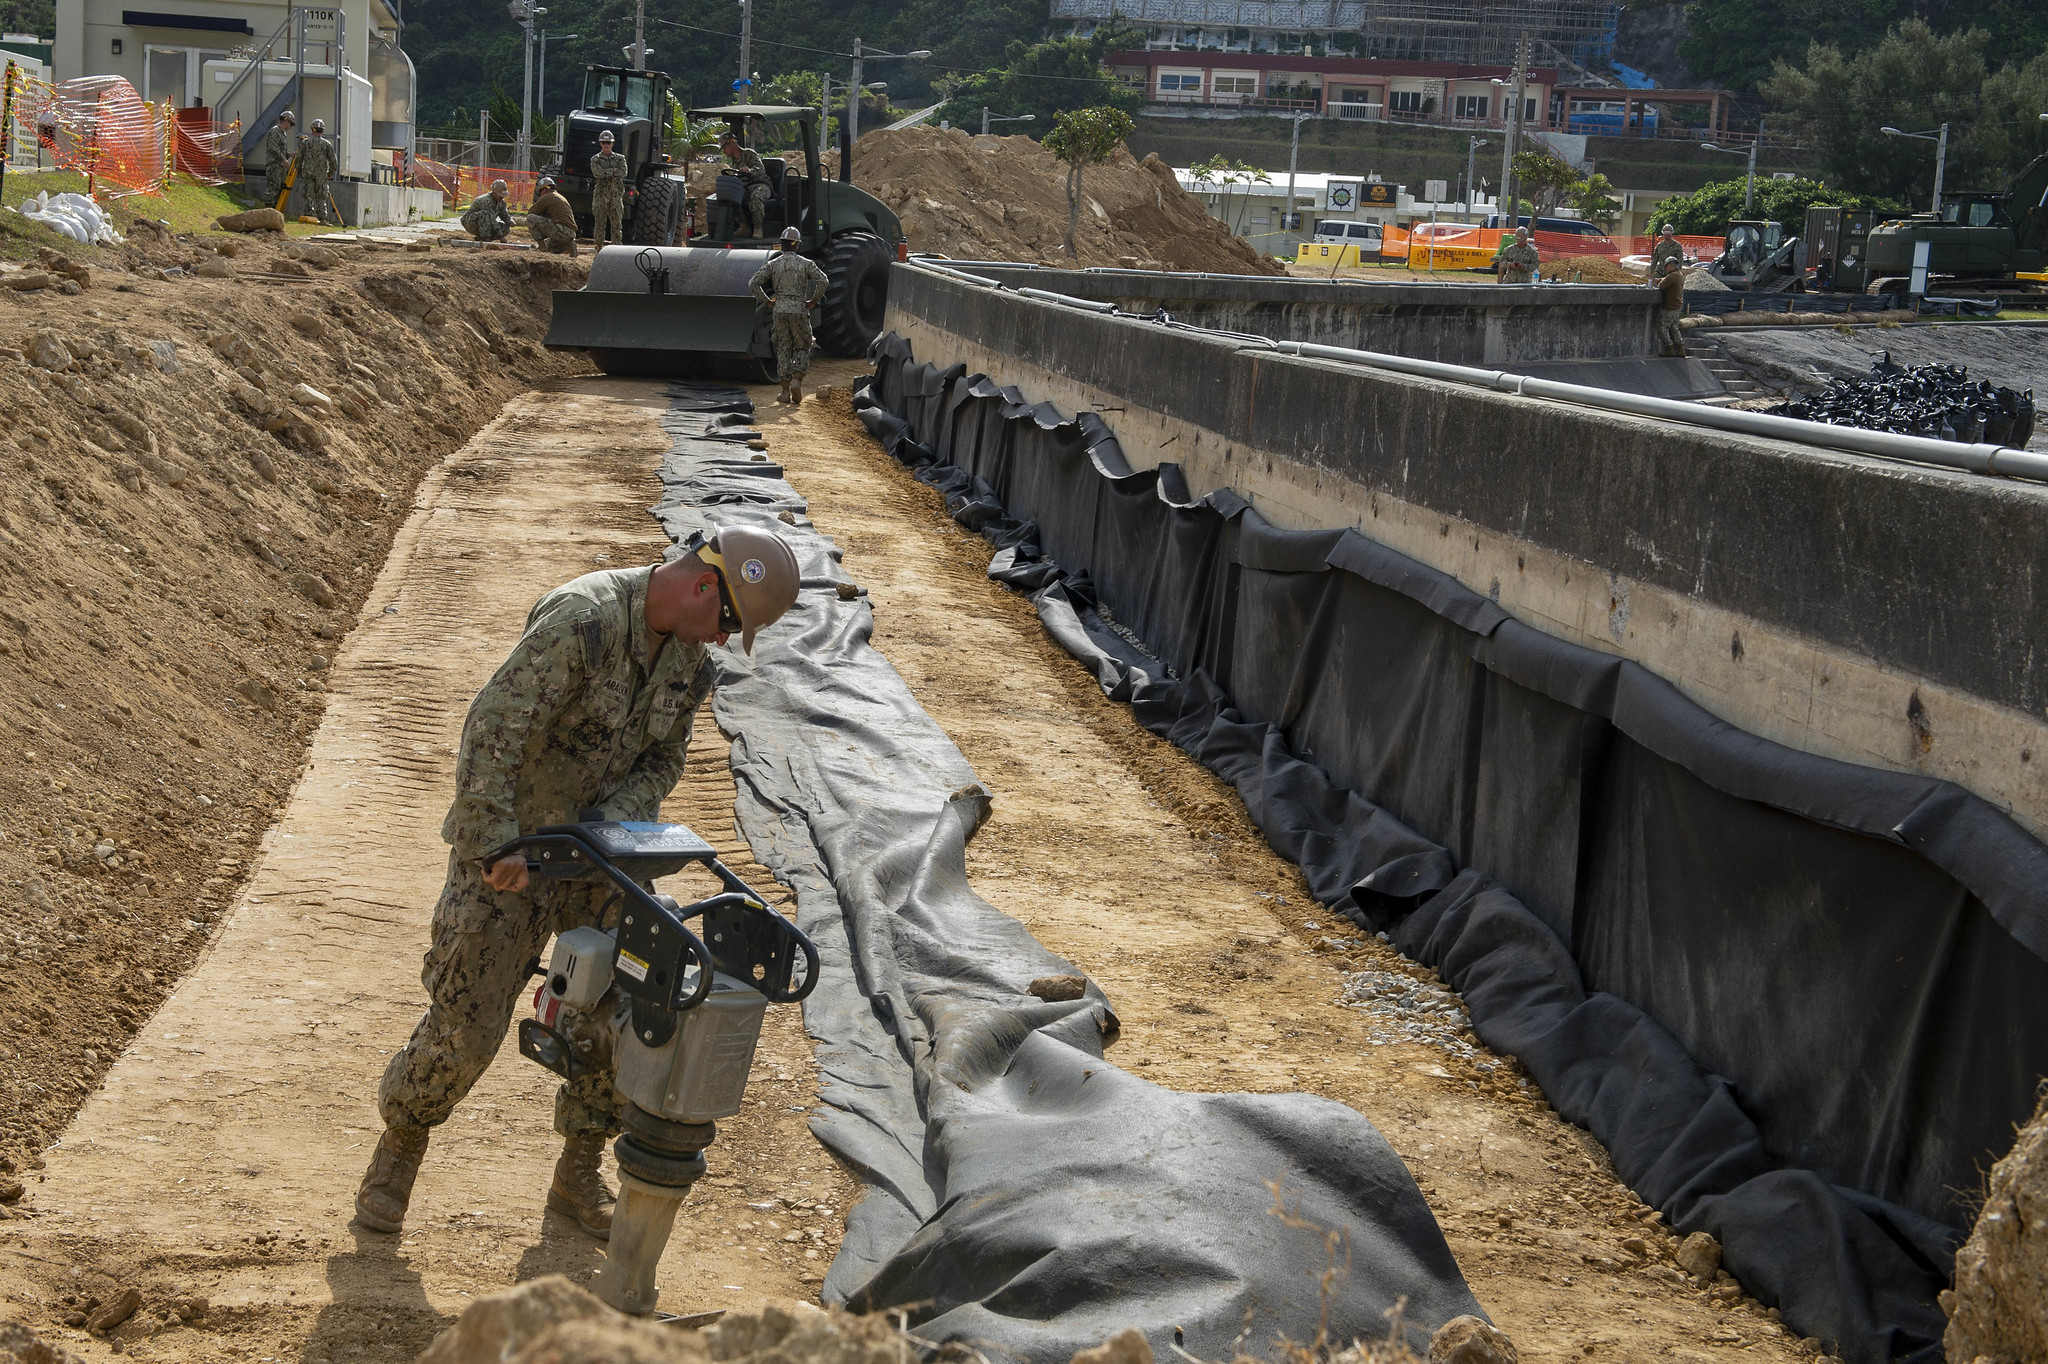 Equipment Operator 2nd Class Aragon Luis operates a compactor at the seawall project at White Beach Naval Facility on Feb. 8, 2020, in Okinawa, Japan. (Mass Communication Specialist 1st Class Stephane Belcher/Navy)